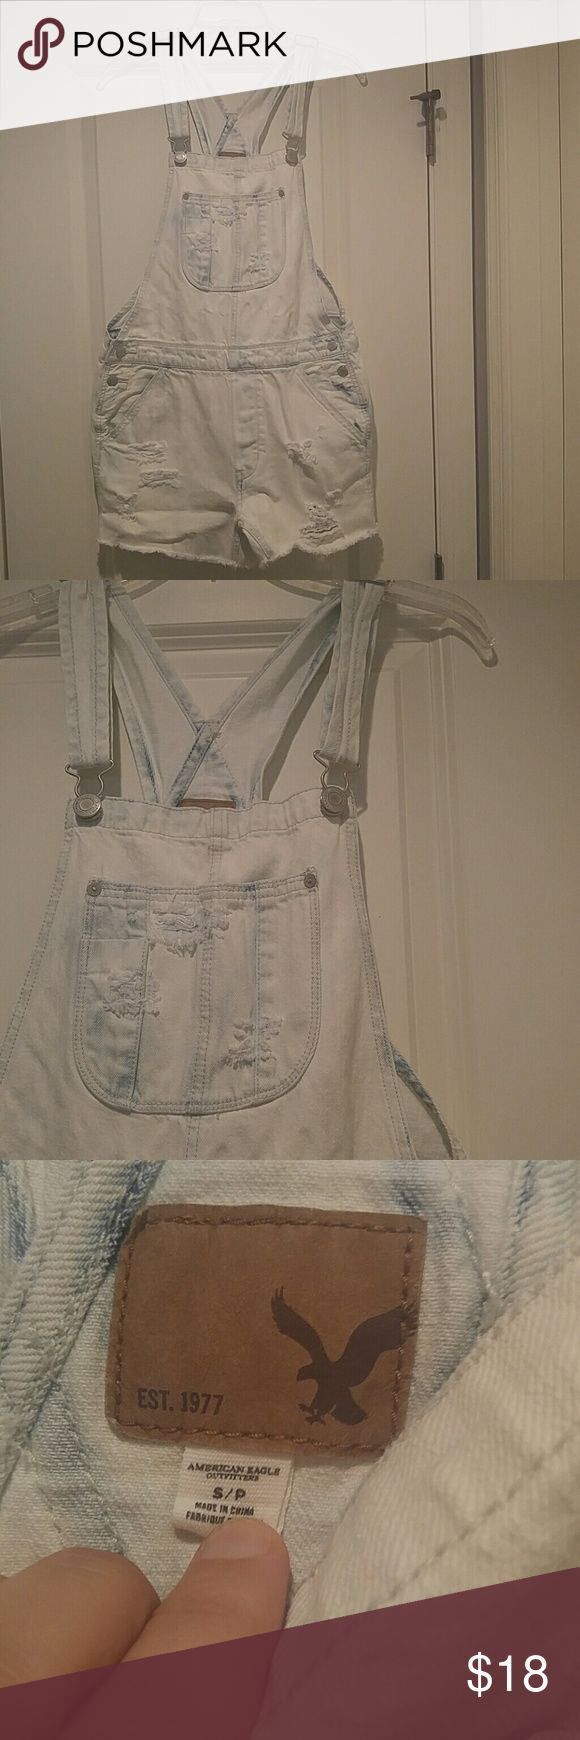 American eagle overalls White washed denim. Distressed. Excellent used condition. Size S American Eagle Outfitters Jeans Overalls